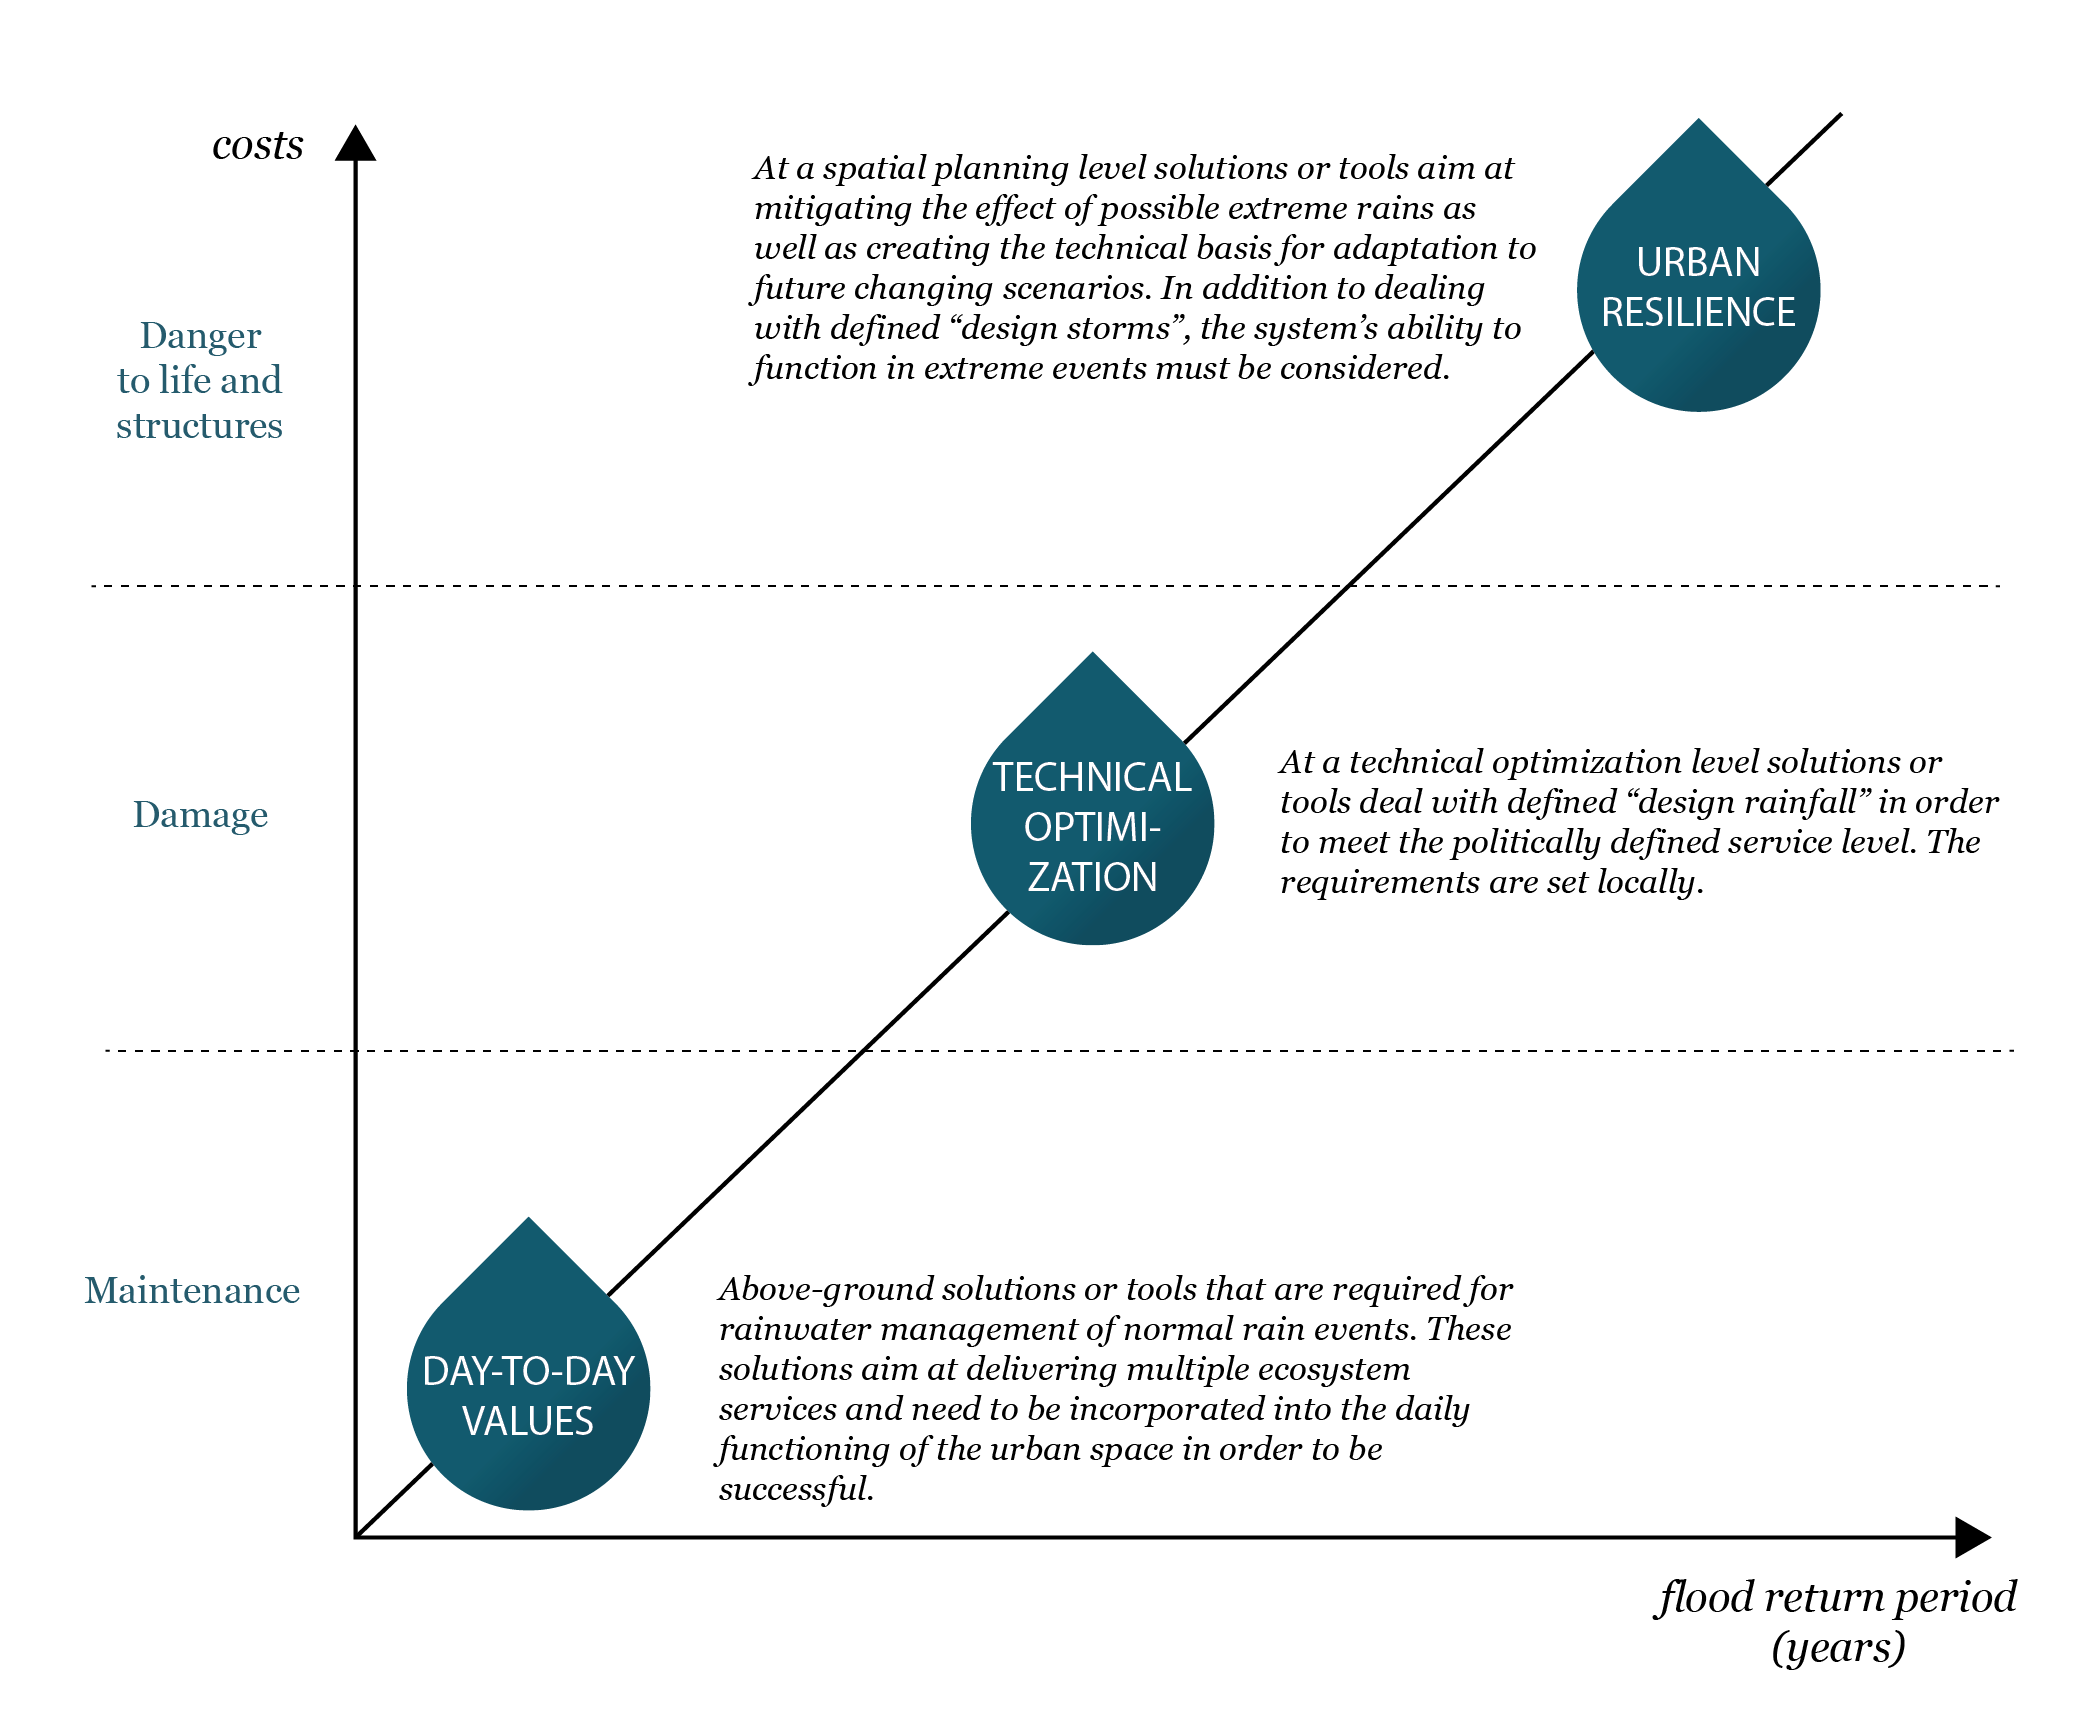 Picture 3: The three points approach for sustainable rainwater management (adapted from Fratini et al 2012).